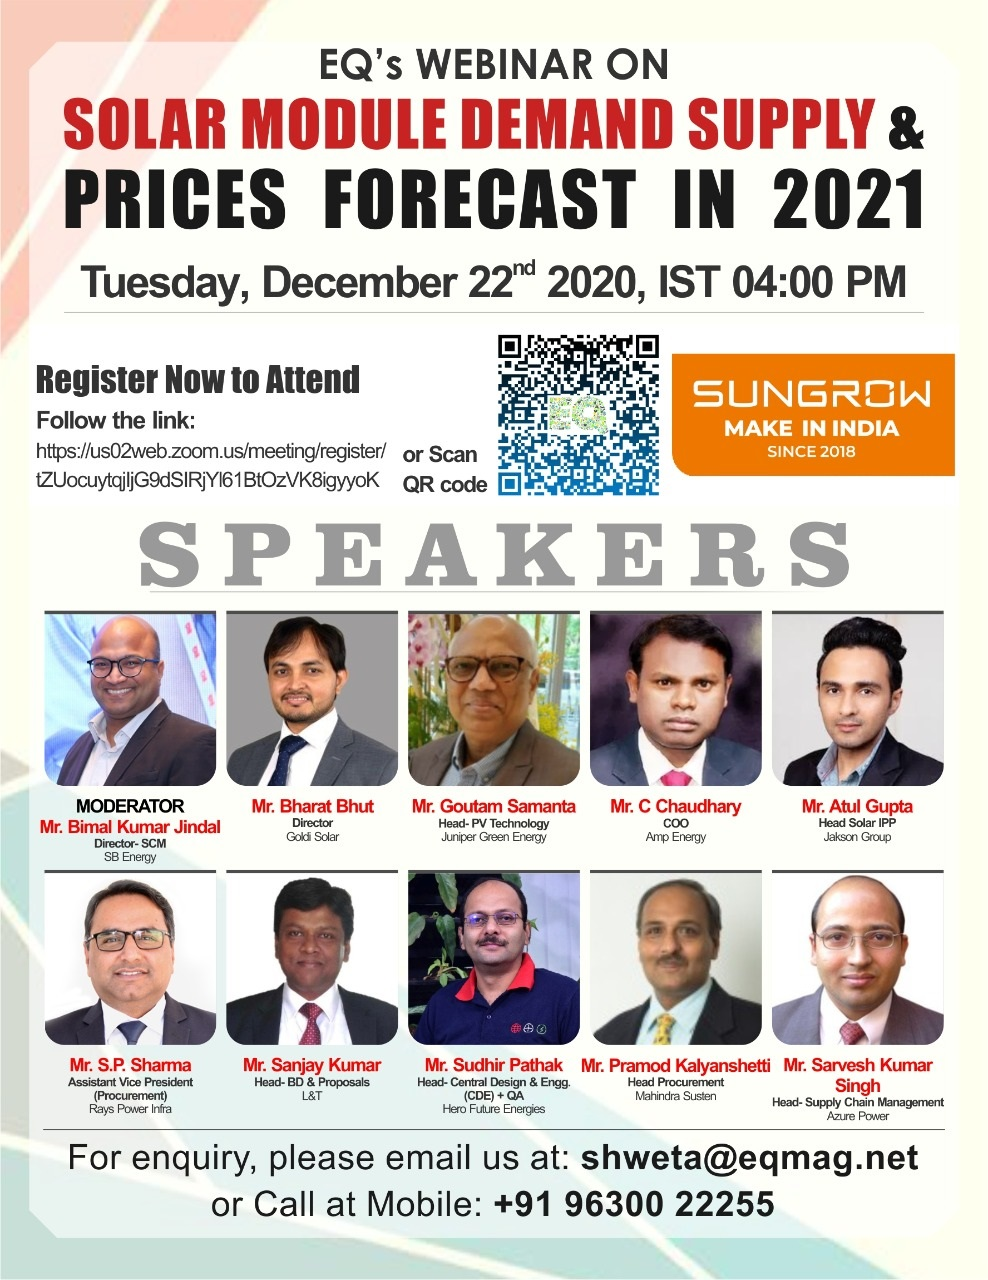 EQ Webinar on Solar Module Demand Supply & Prices forecast in 2021 on Tuesday December 22th from 04:00 PM Onwards….Register Now !!!